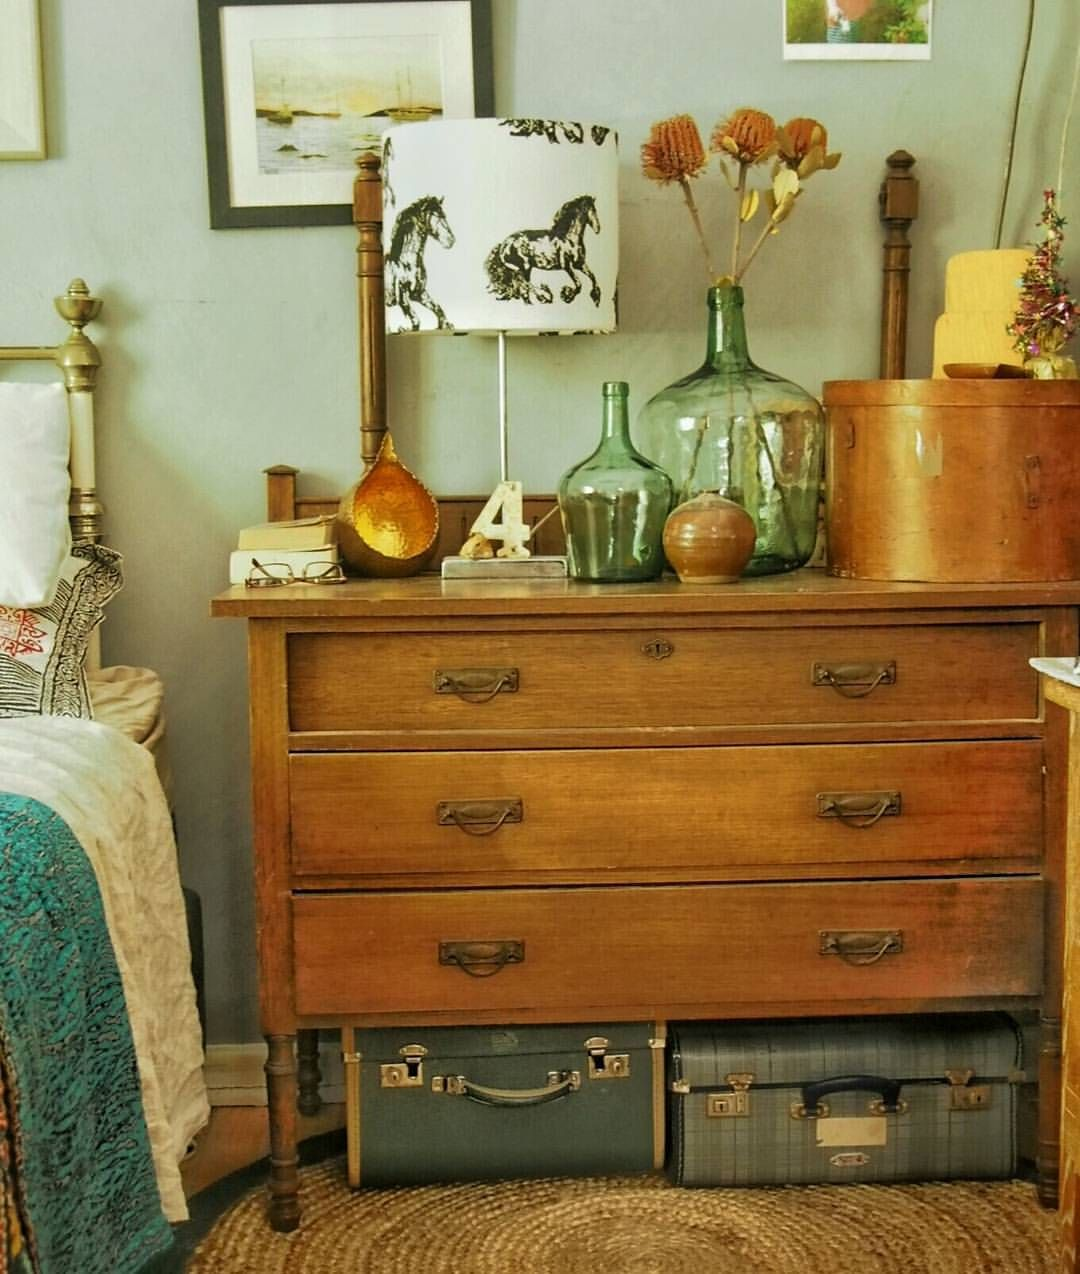 Uncategorized Design Your Own Dresser sustainable decorating ideas green living vintage style furniture ideas